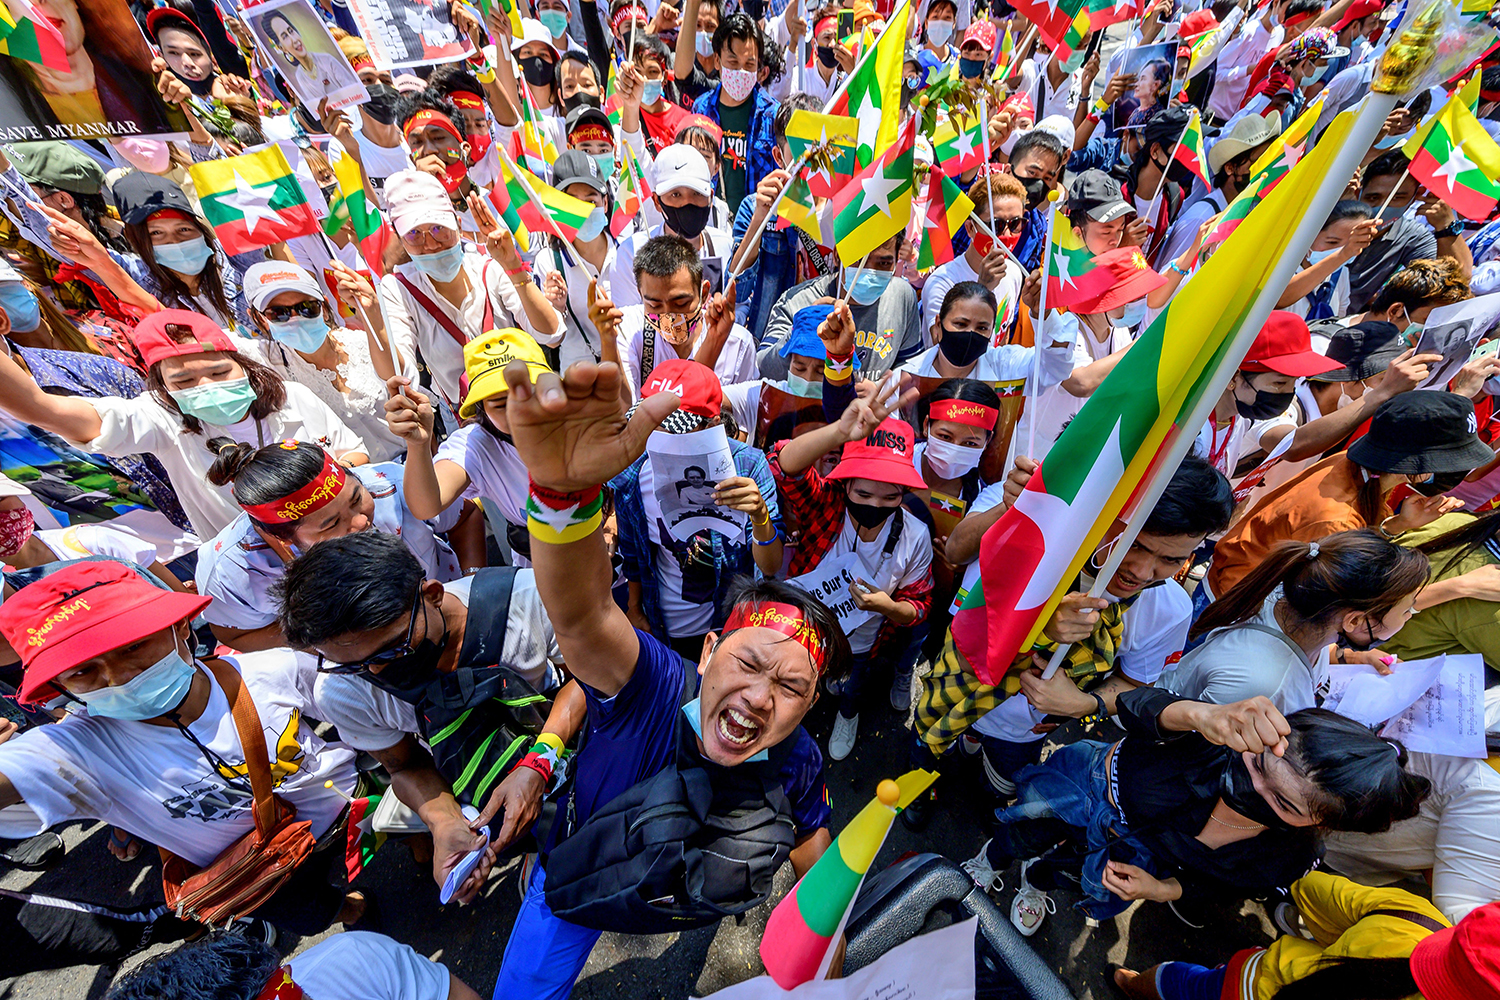 Myanmar migrants in Thailand shout slogans at a protest against the military coup in their home country in front of the United Nations ESCAP building in Bangkok on March 7. MLADEN ANTONOV/AFP via Getty Images